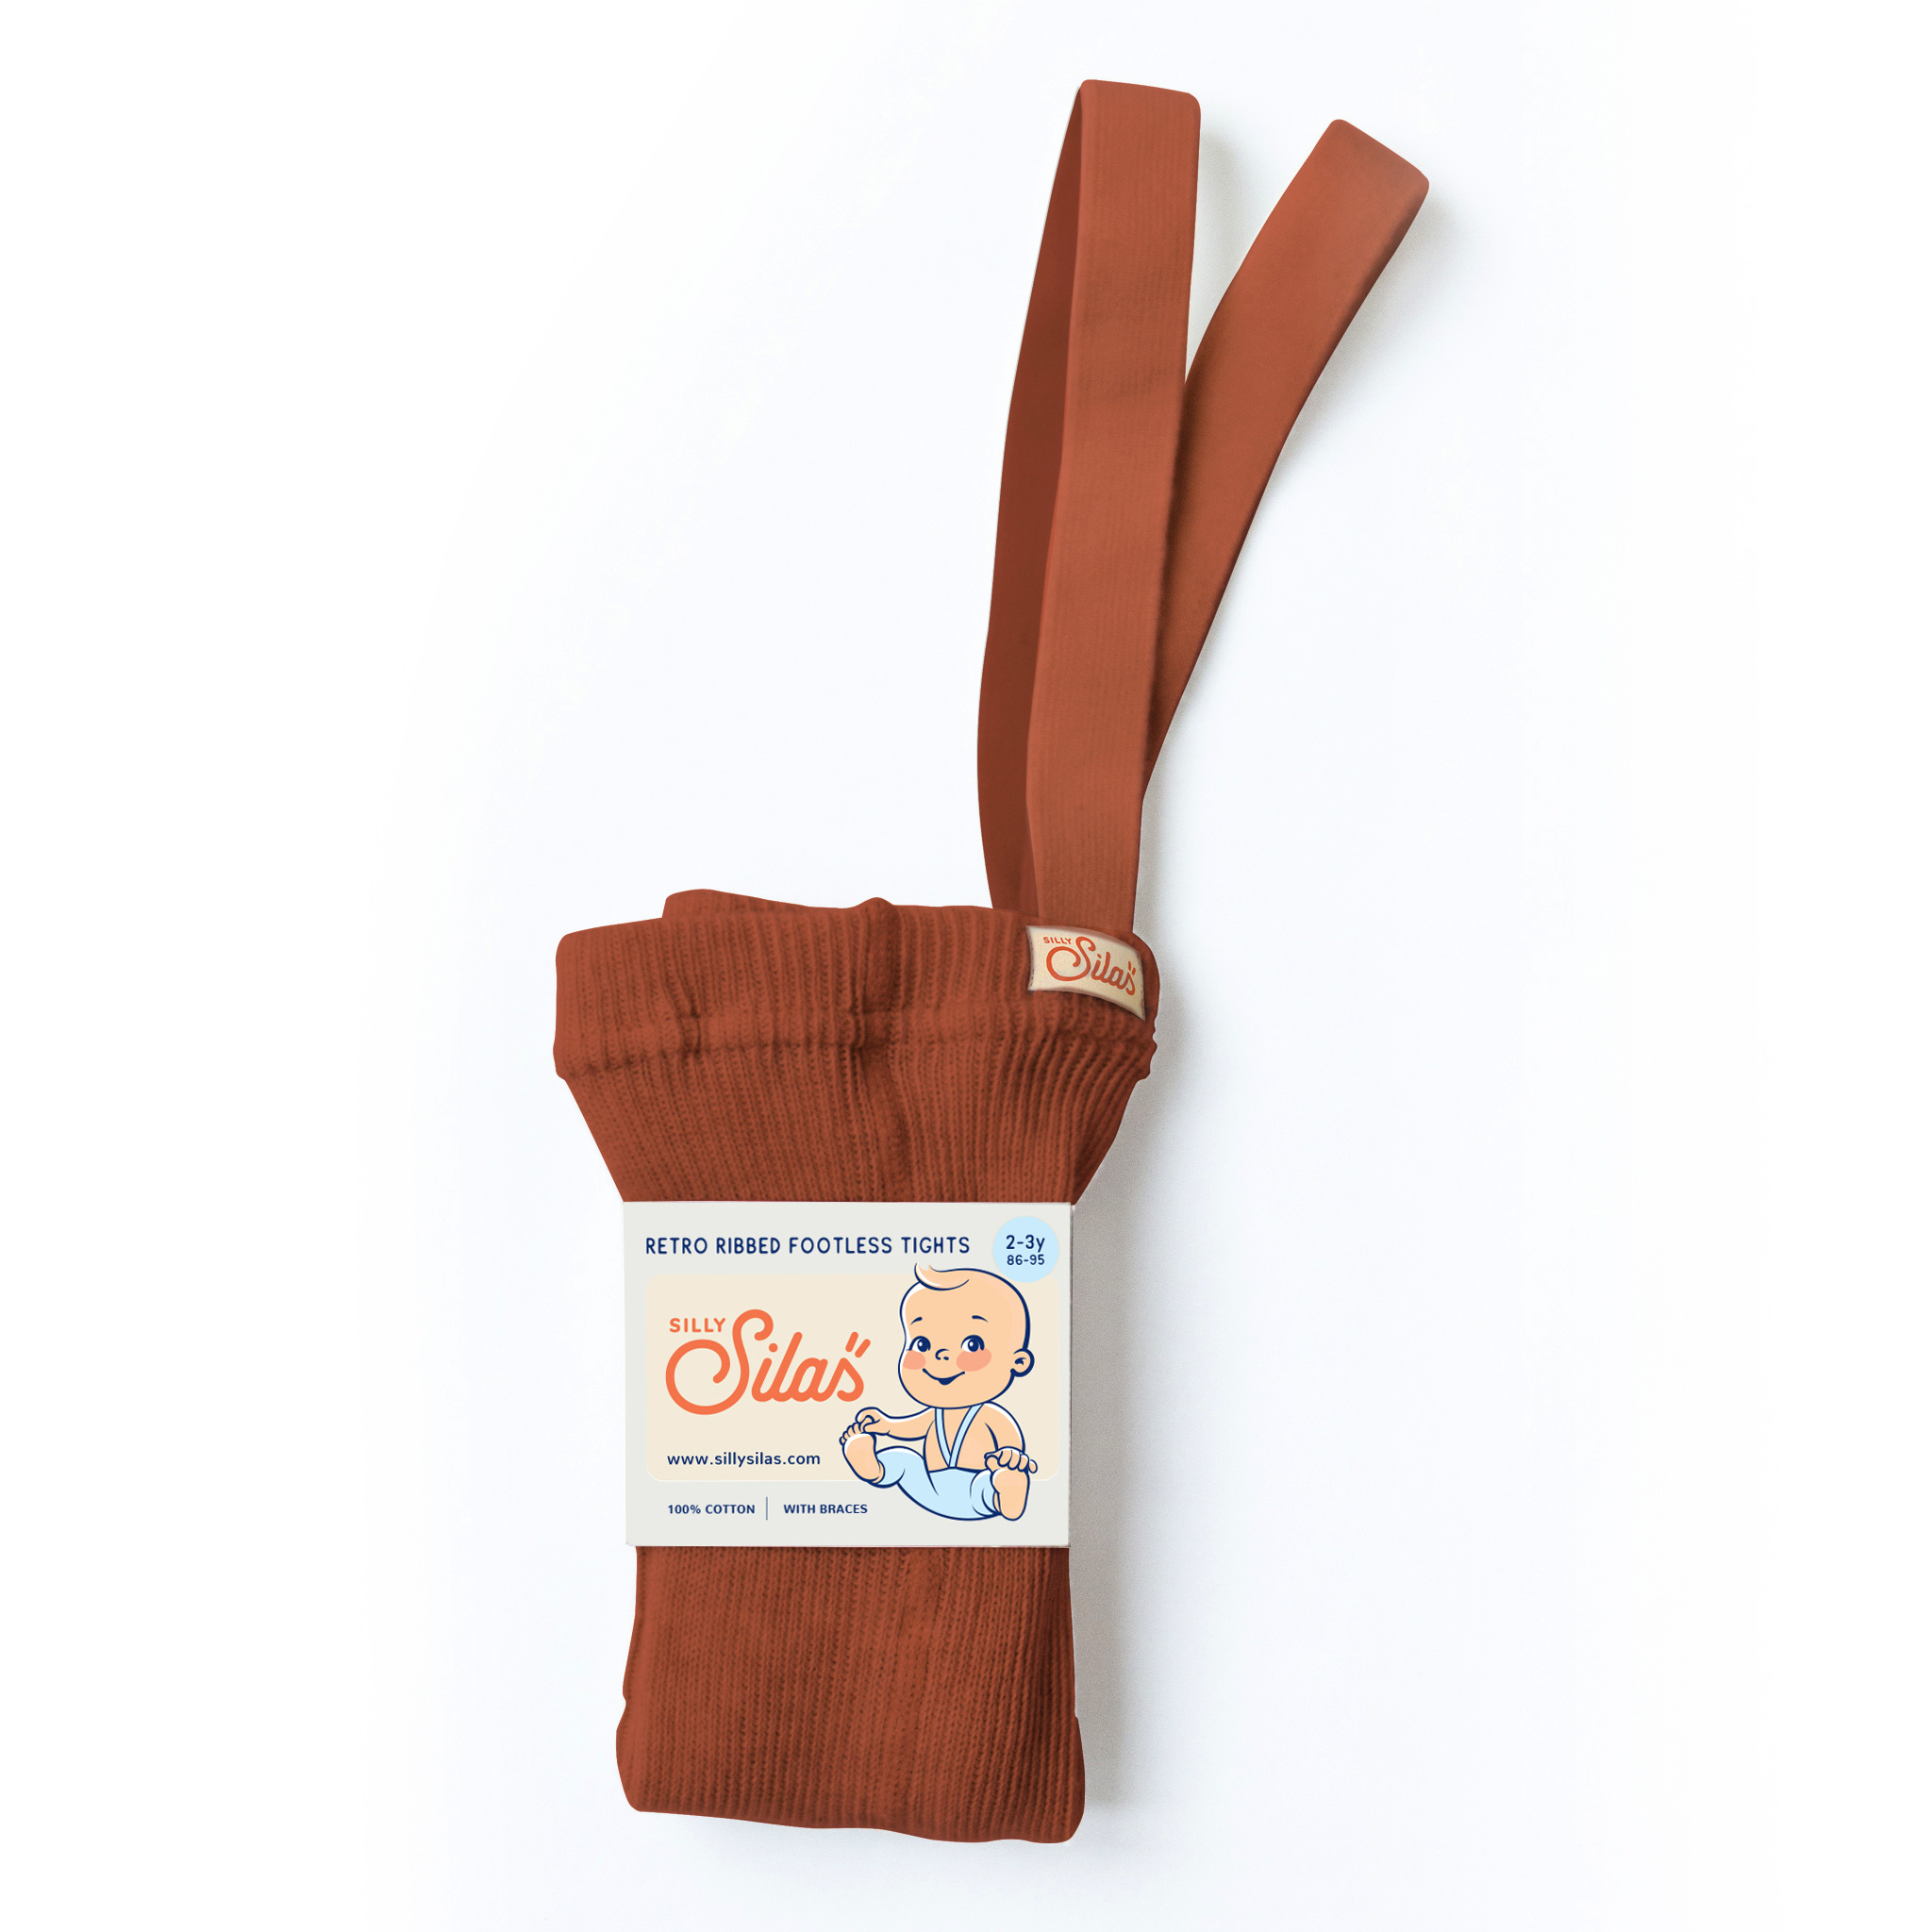 Silly Silas footless tights with braces - 100% cotton - cinnamon - 6 m to 4 years